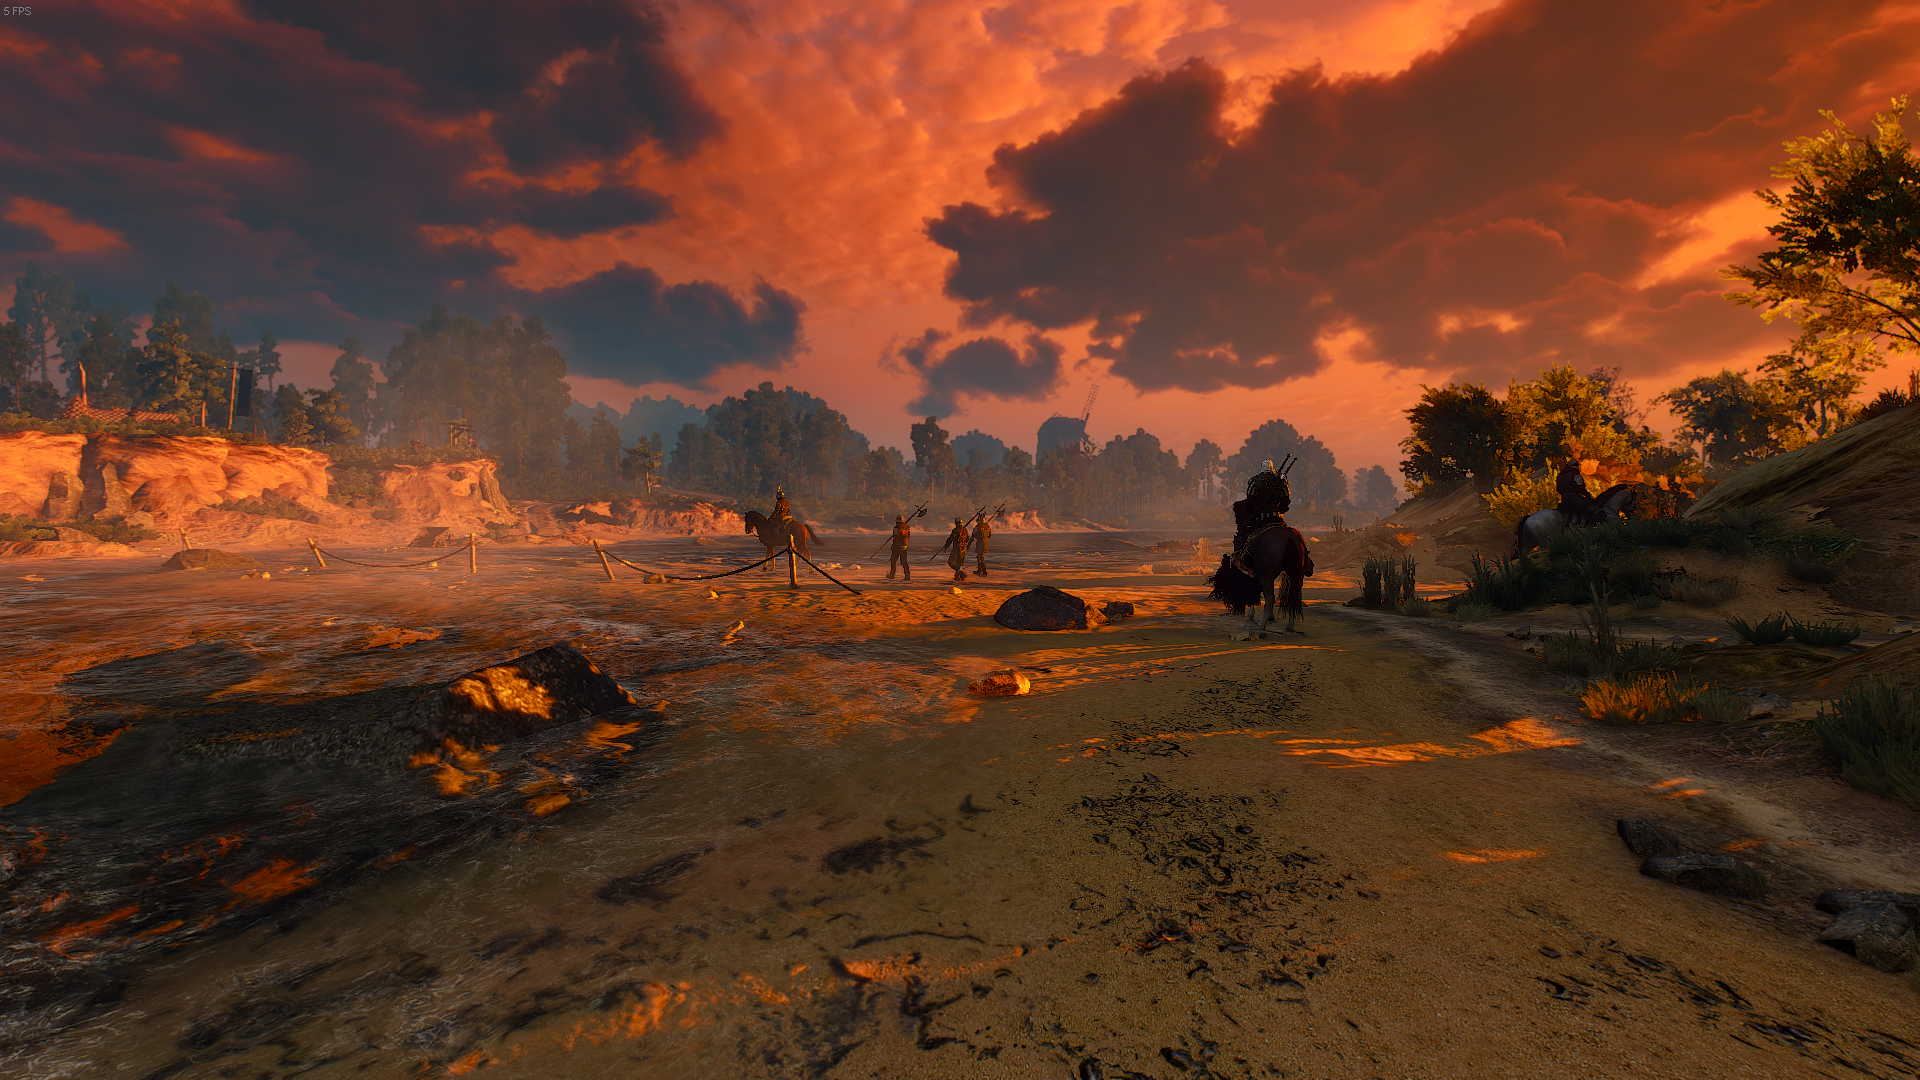 The Witcher 3 Super-Resolution 2020.07.19 - 21.51.38.53 Thumbnail.png - The Witcher 3: Wild Hunt